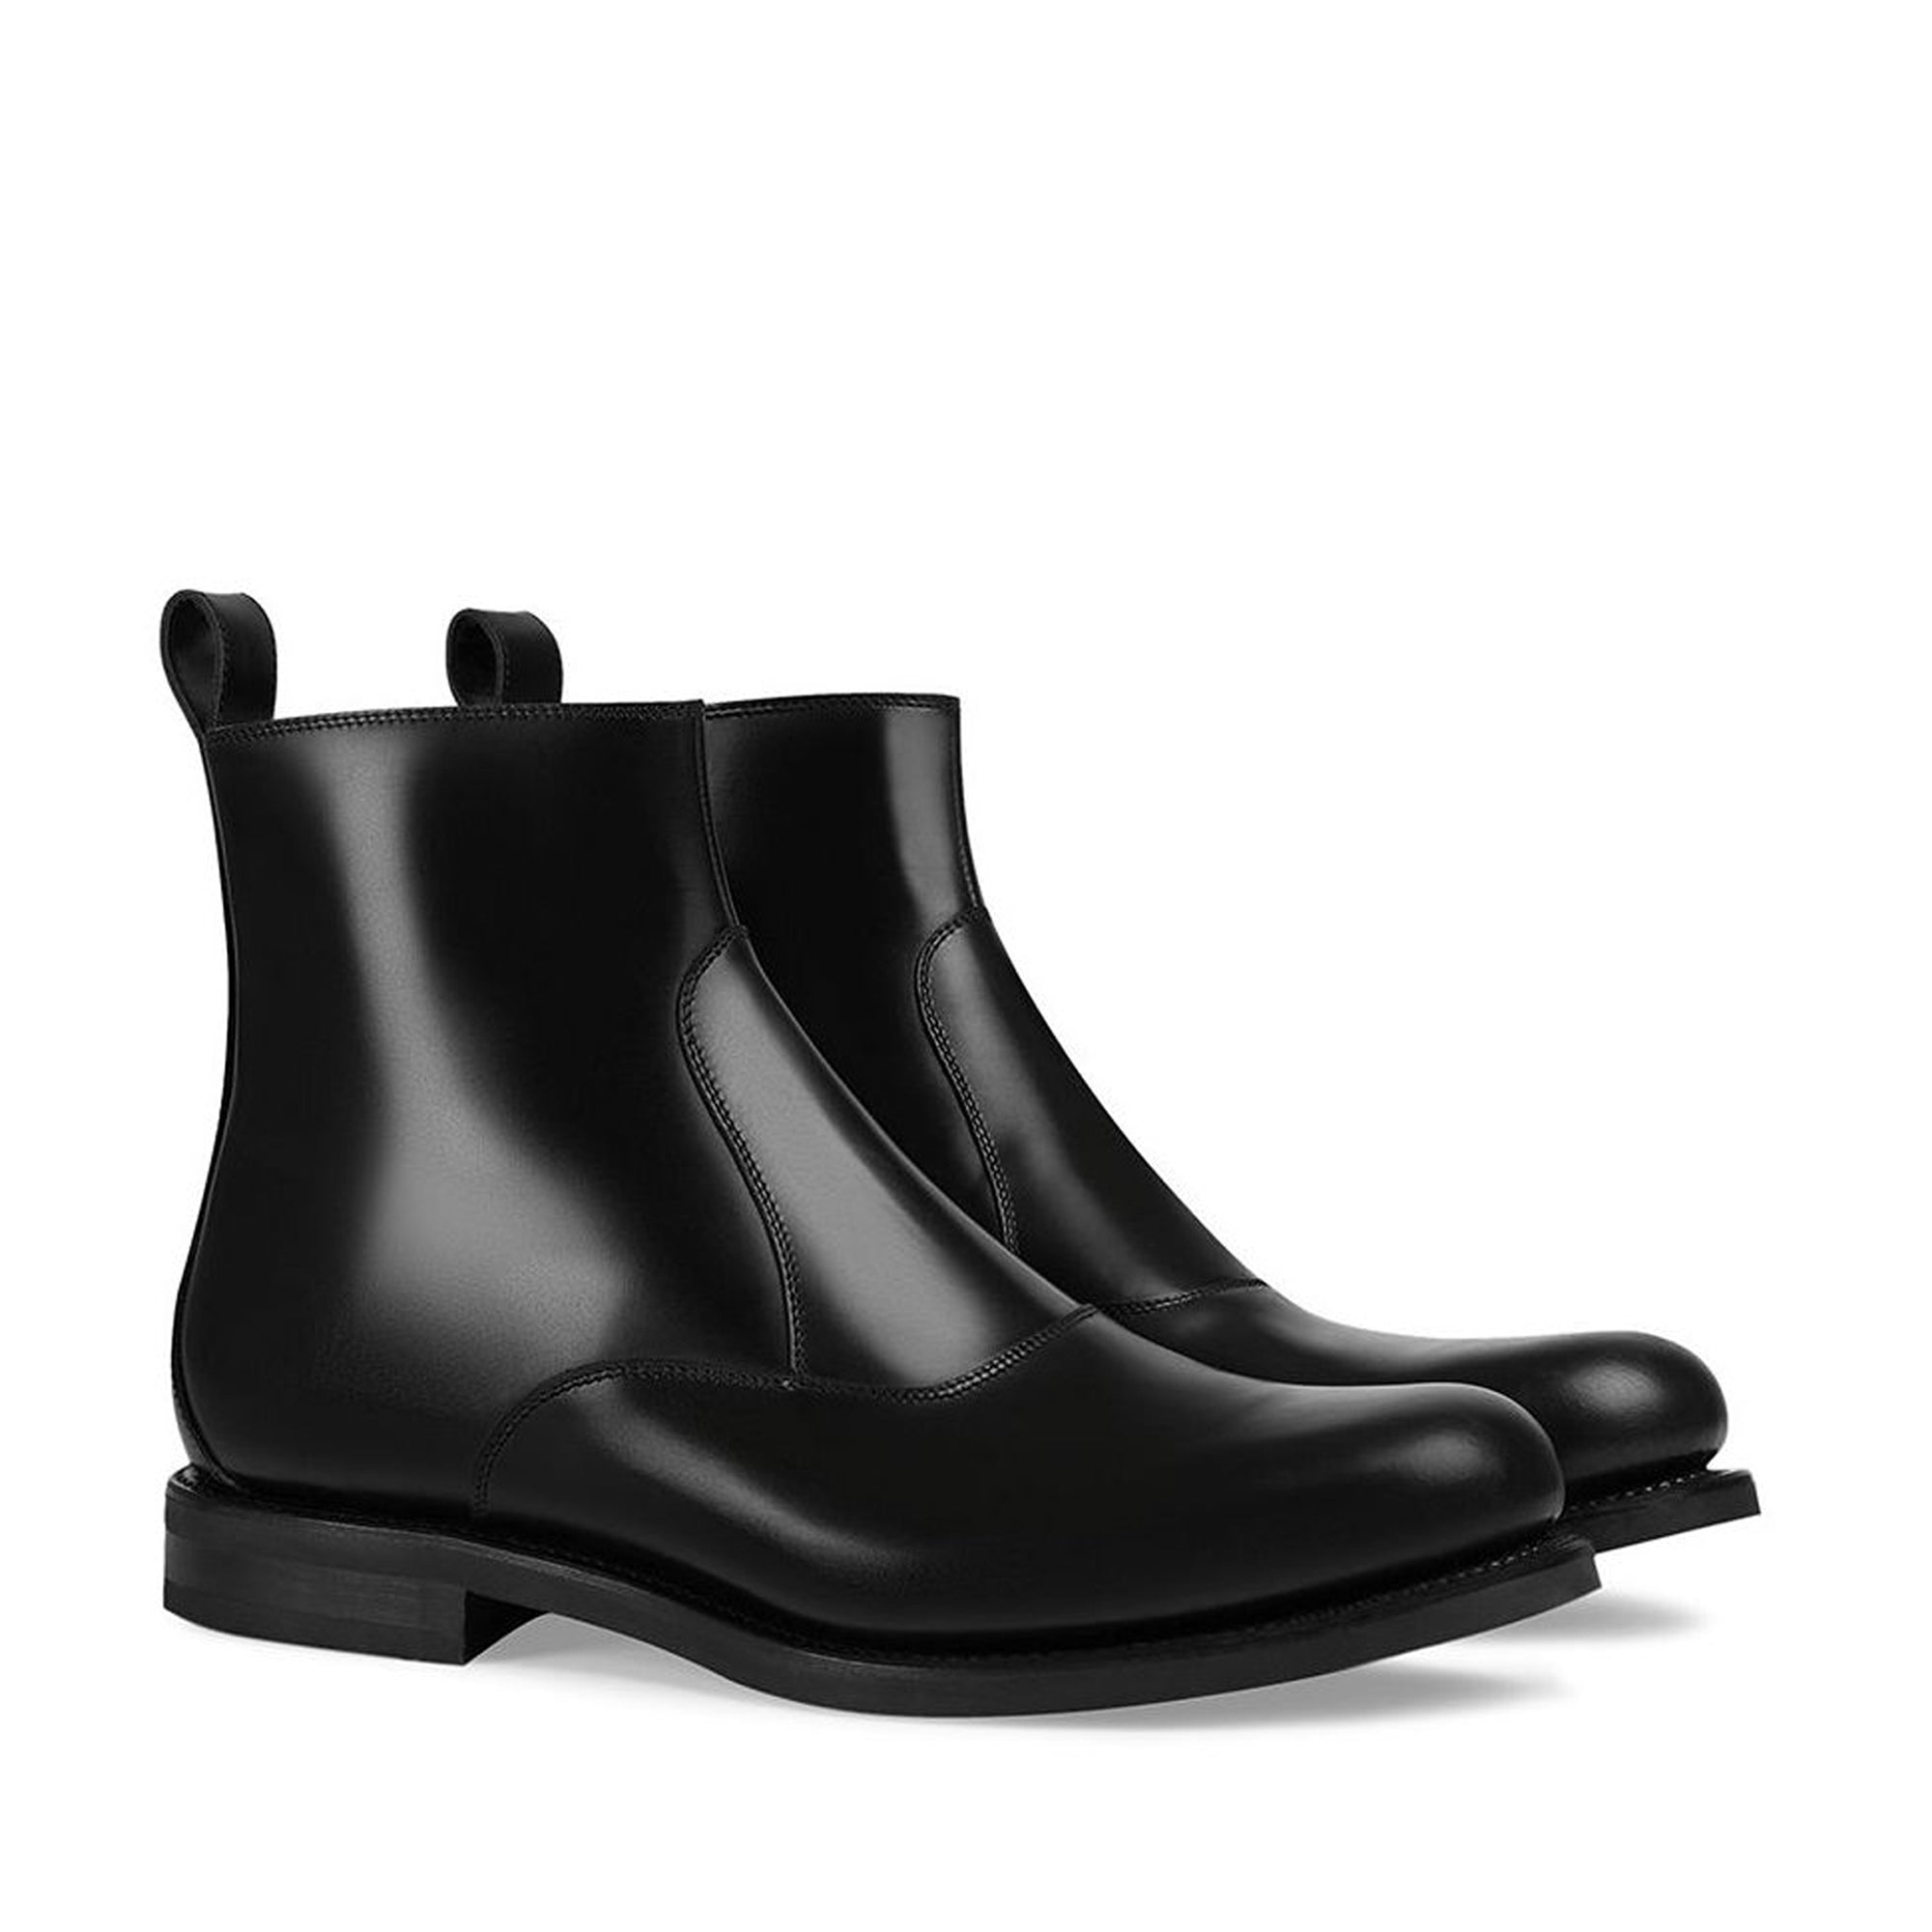 Gucci Black Chelsea Leather Low Boots